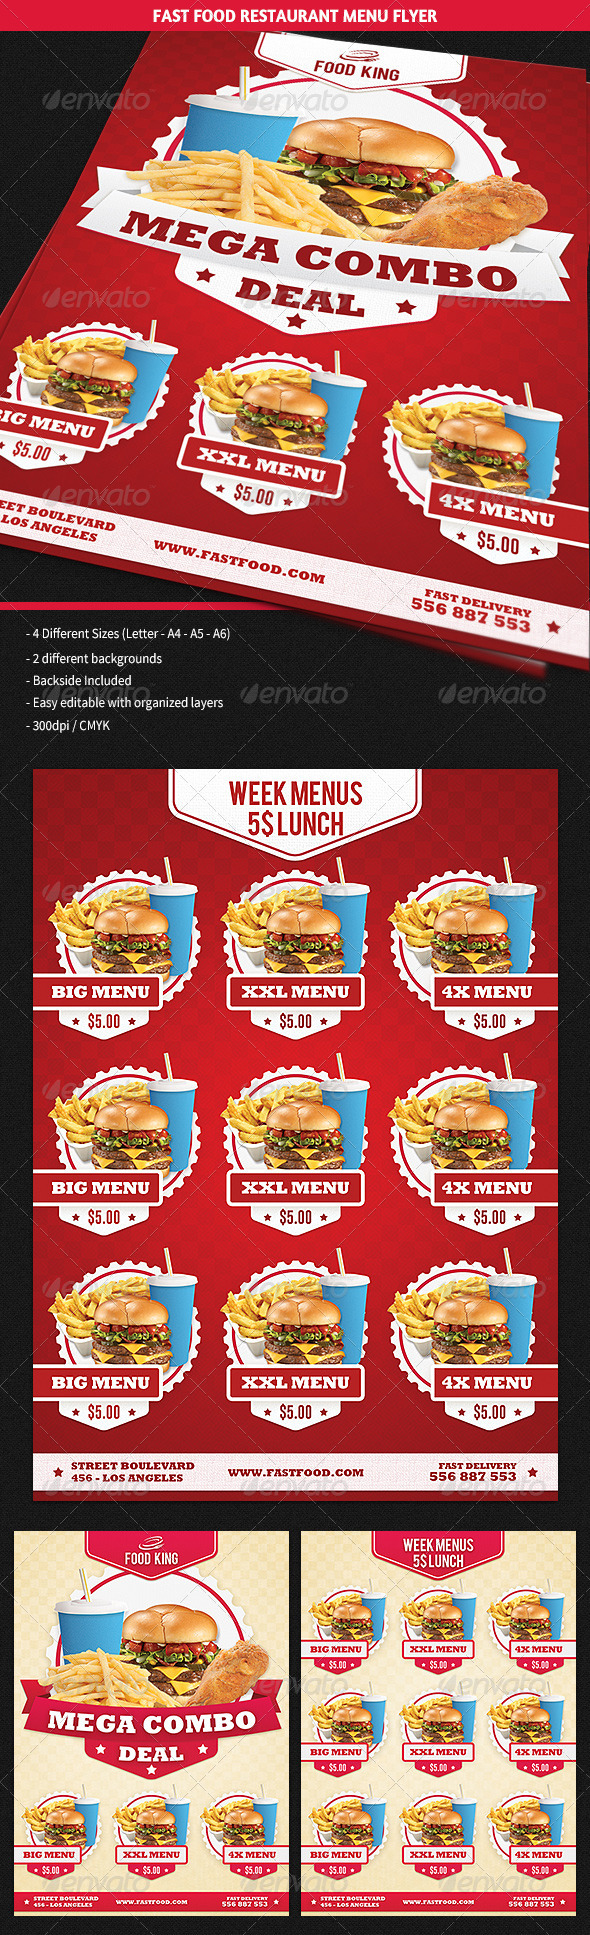 GraphicRiver Restaurant Fast Food Menu Flyer 5910891